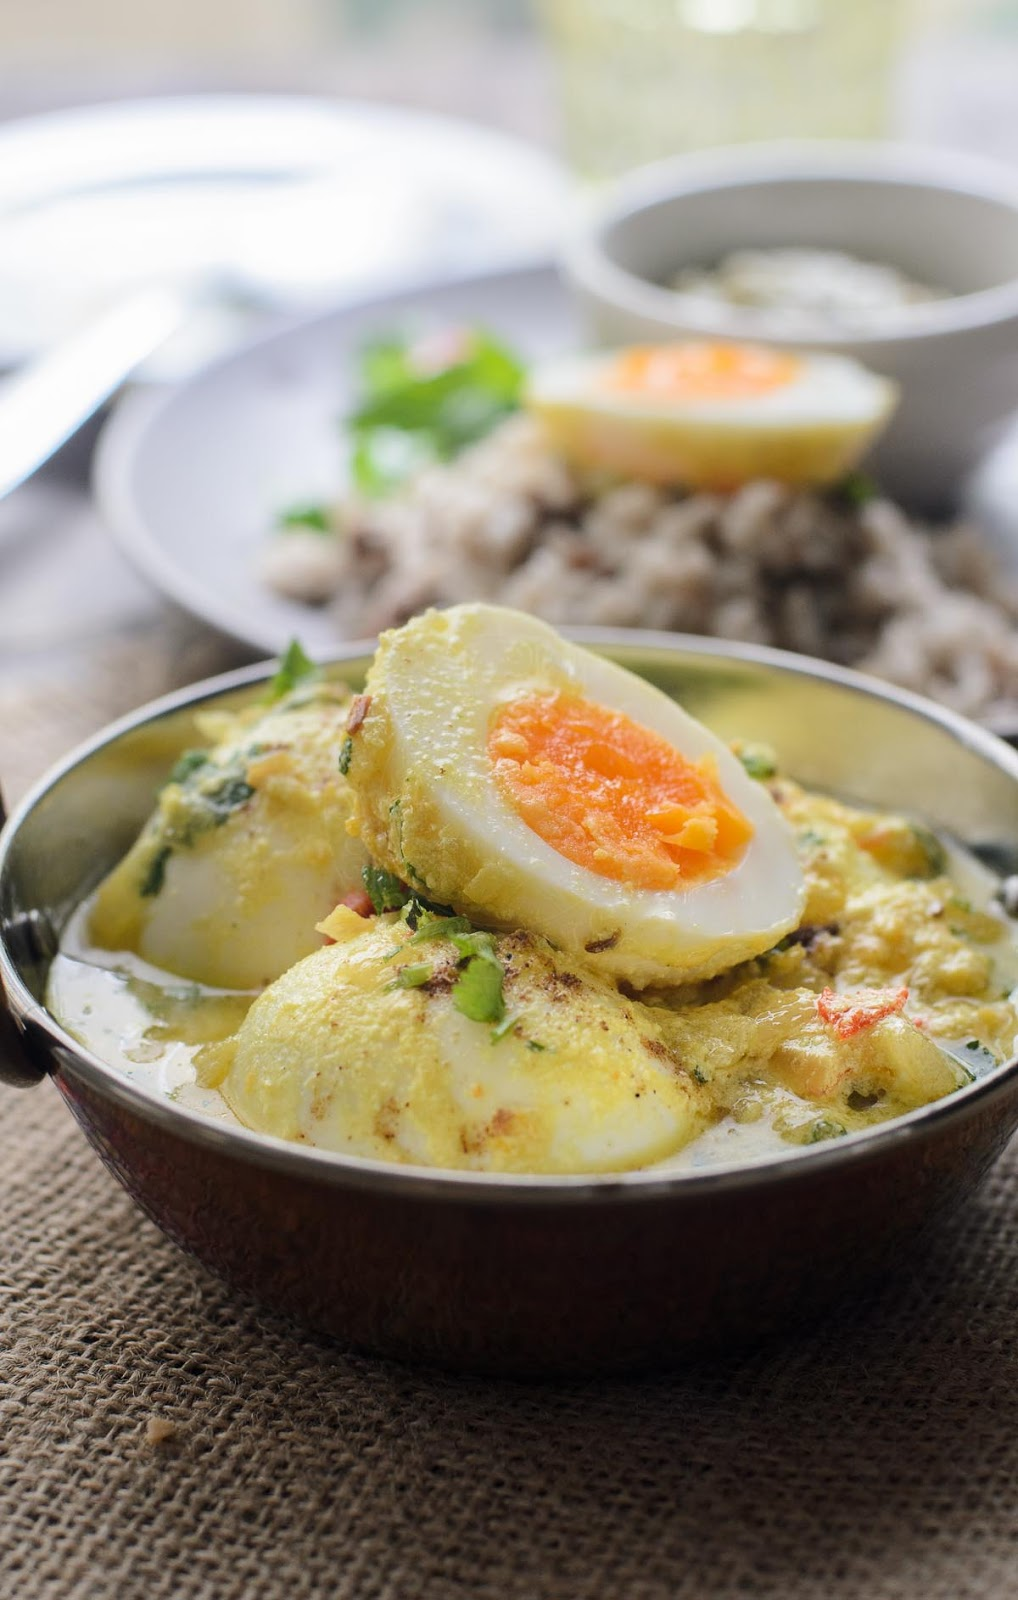 Tasty Eggs in Spiced Yogurt Sauce